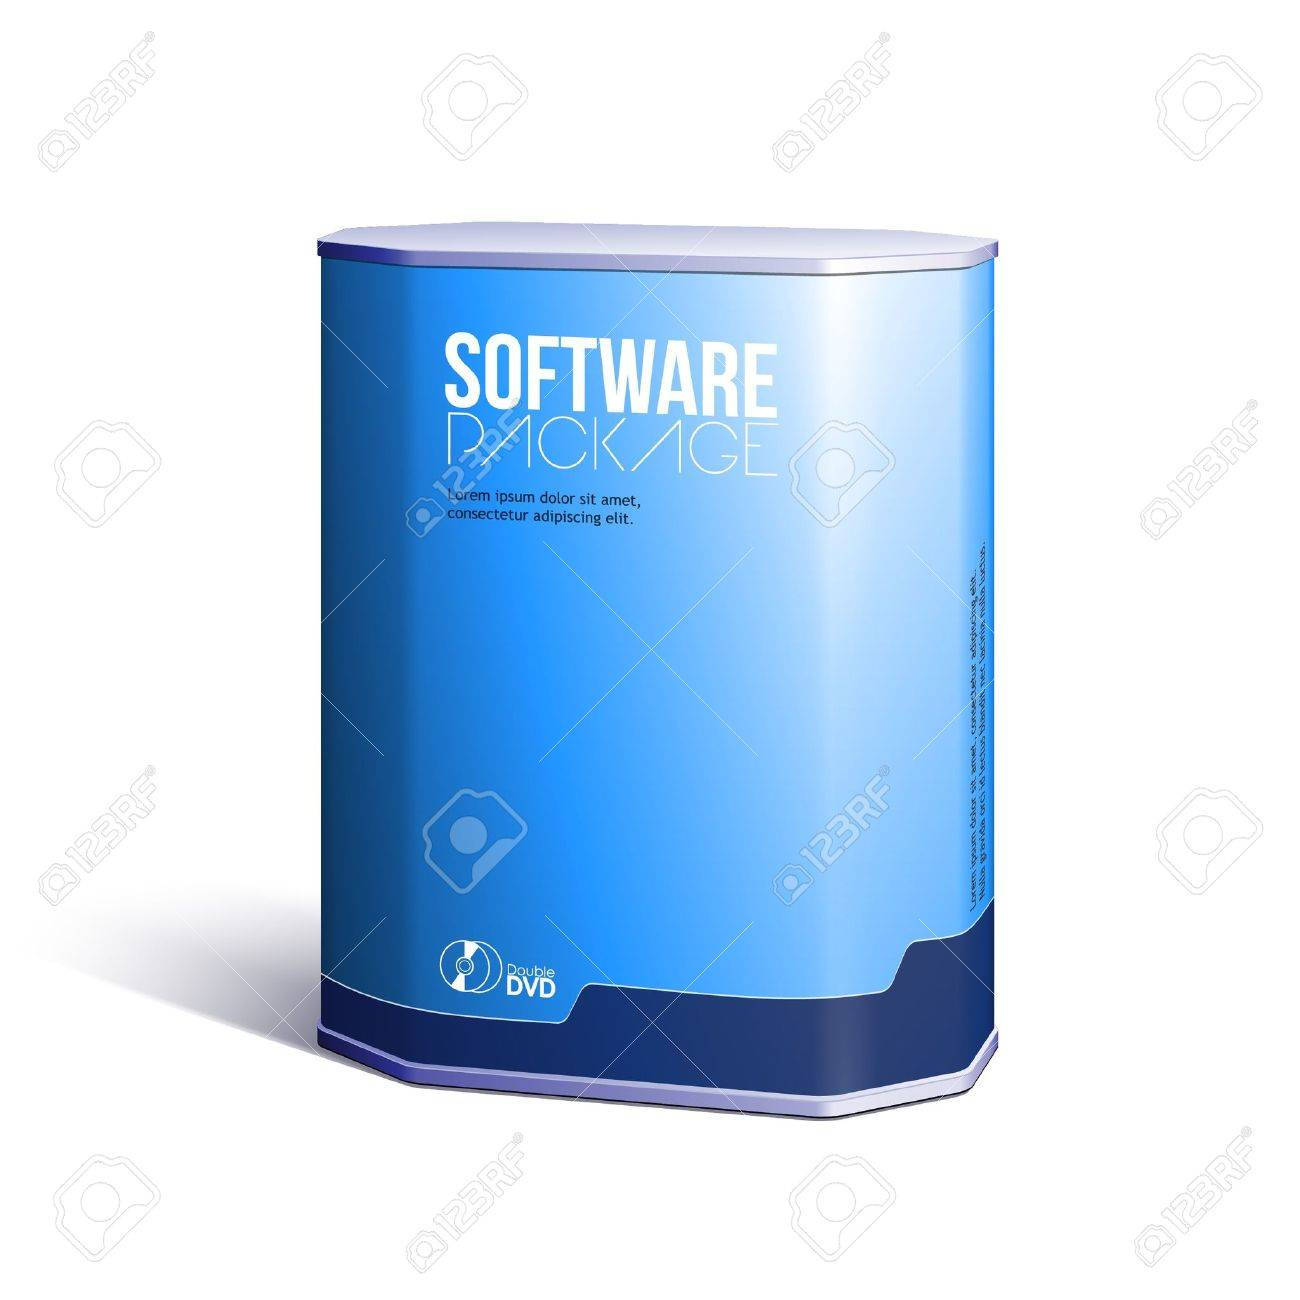 Octagon Plastic Software DVD/CD Disk Package Box Blue Stock Vector - 14668525